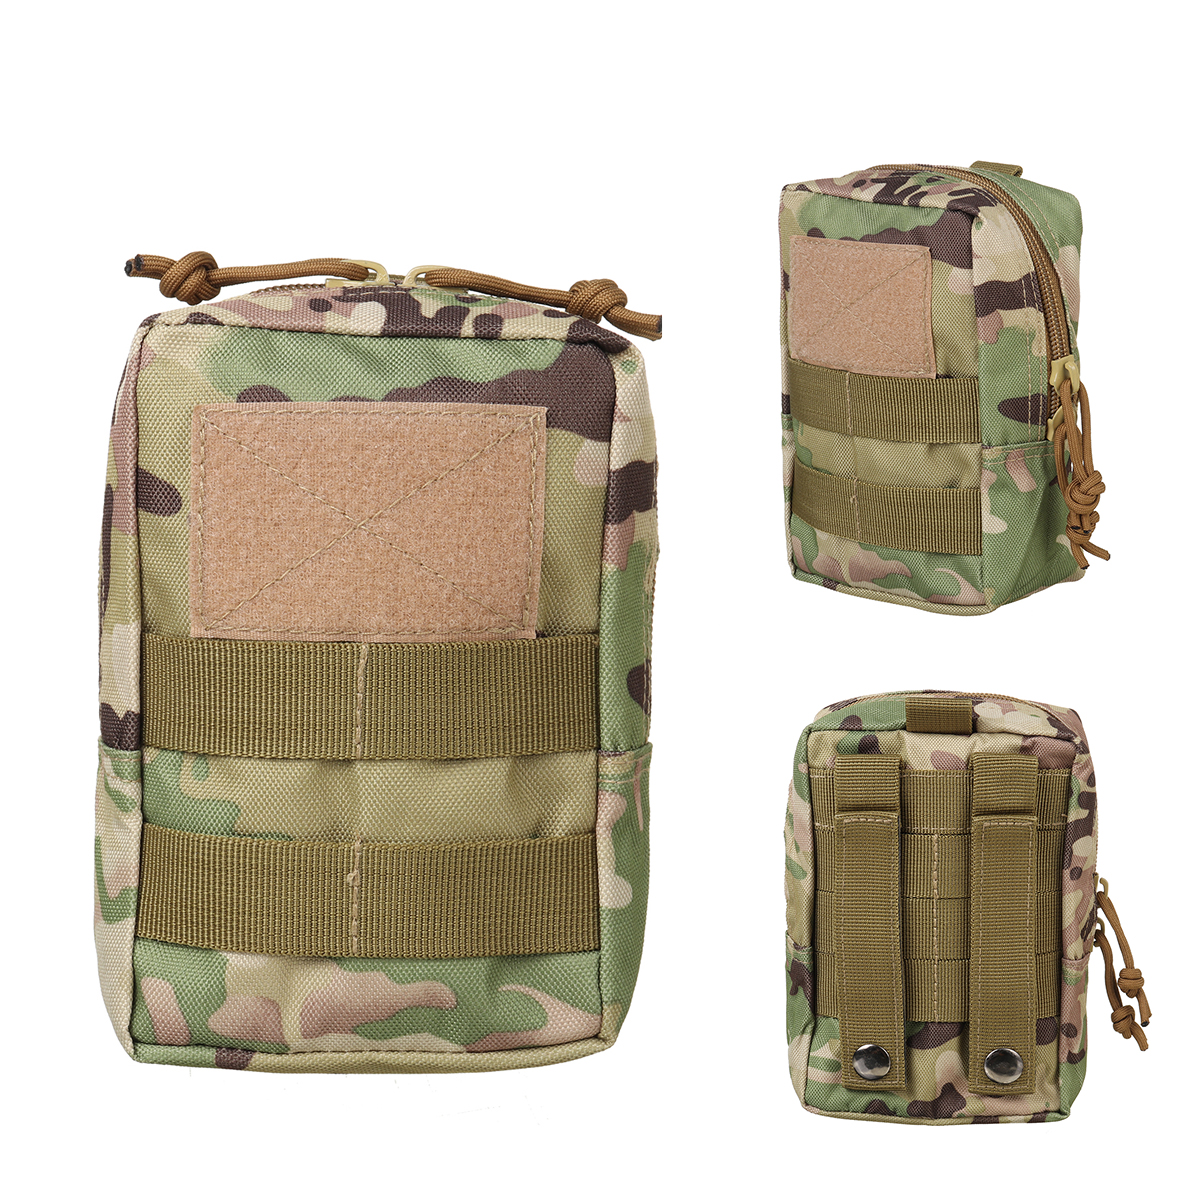 Military Tactical Camo Belt Pouch Bag Pack Phone Bags Molle Pouch Camping Waist Pocket Bag Phone Case Pocket For Hunting